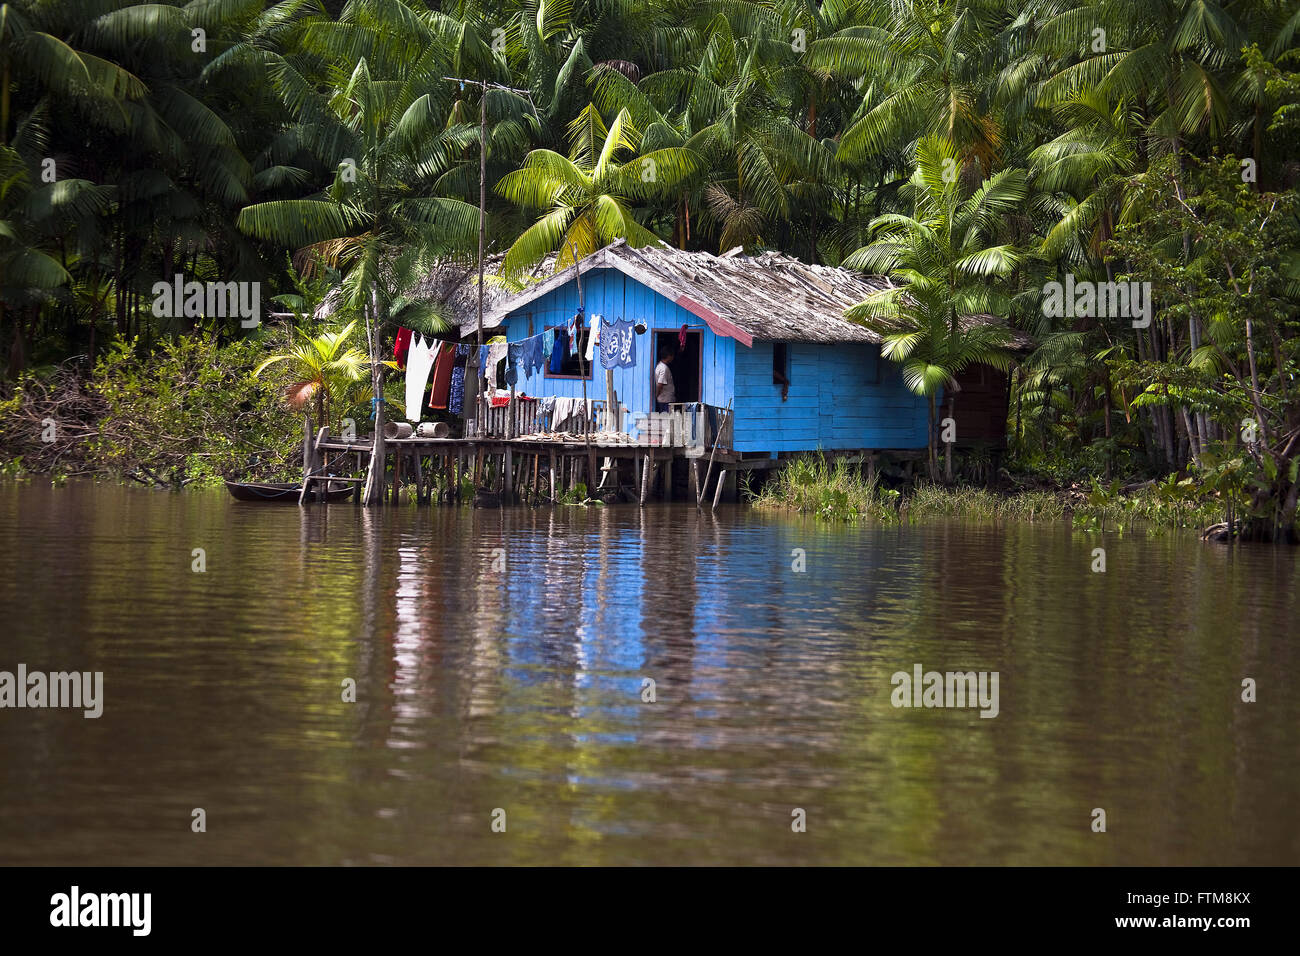 Typical house of the riverside population of the town of Breves - Stock Image